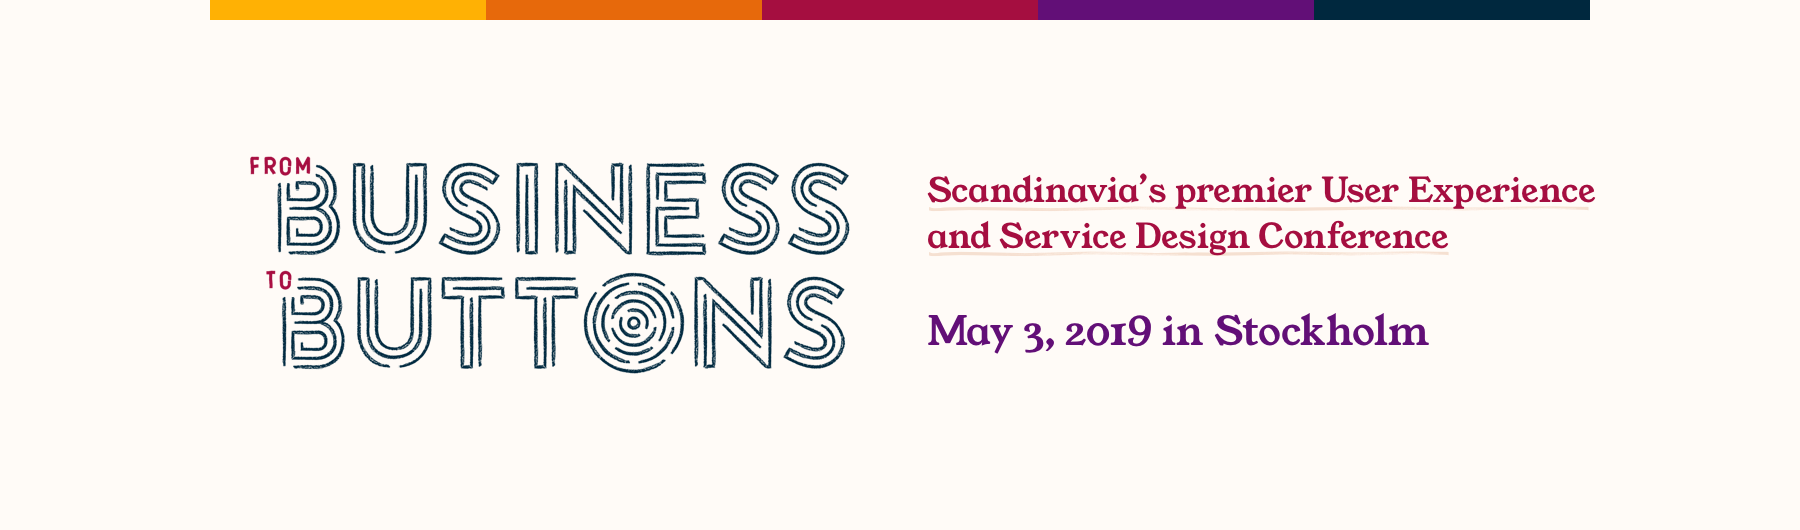 From Business to Buttons 2019